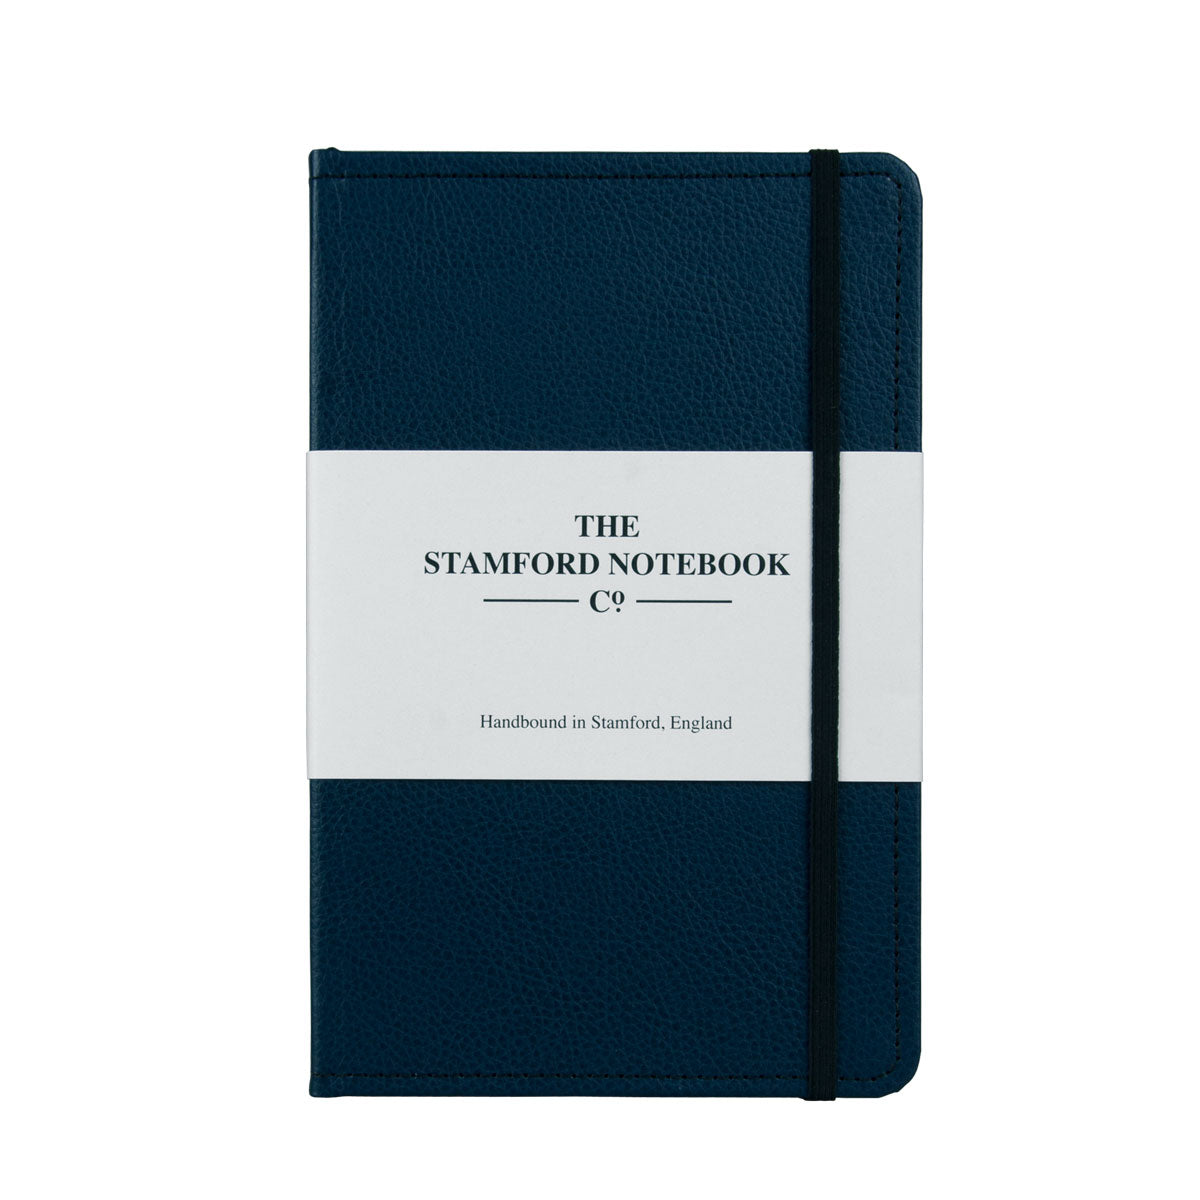 Marine Blue leather notebook with black stitching